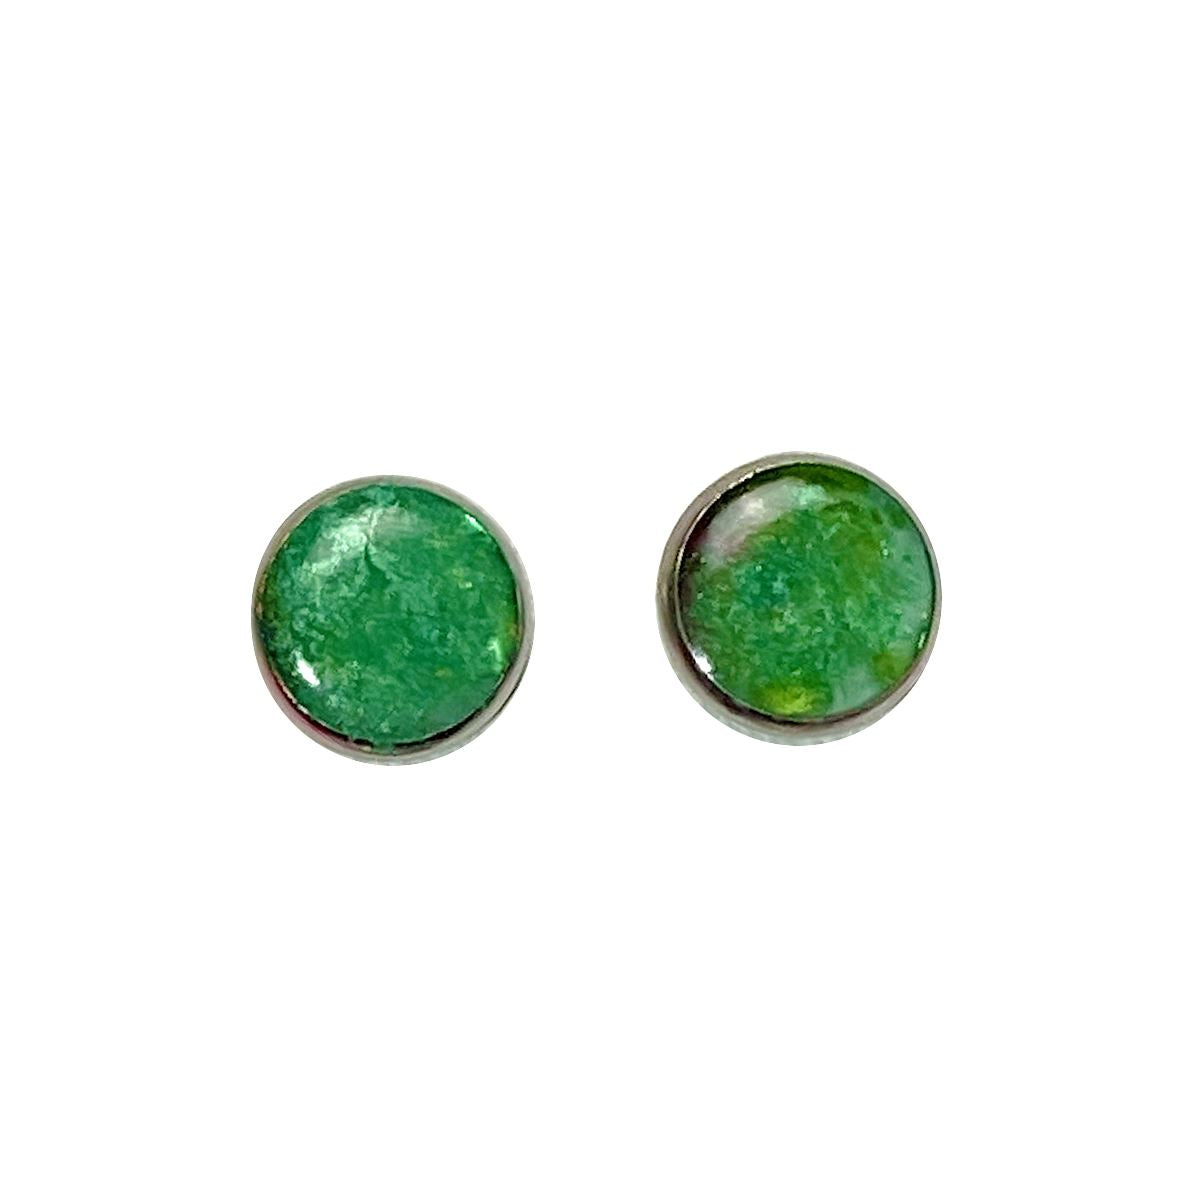 Color Study - green 12mm stud earrings Deanna Dot Store